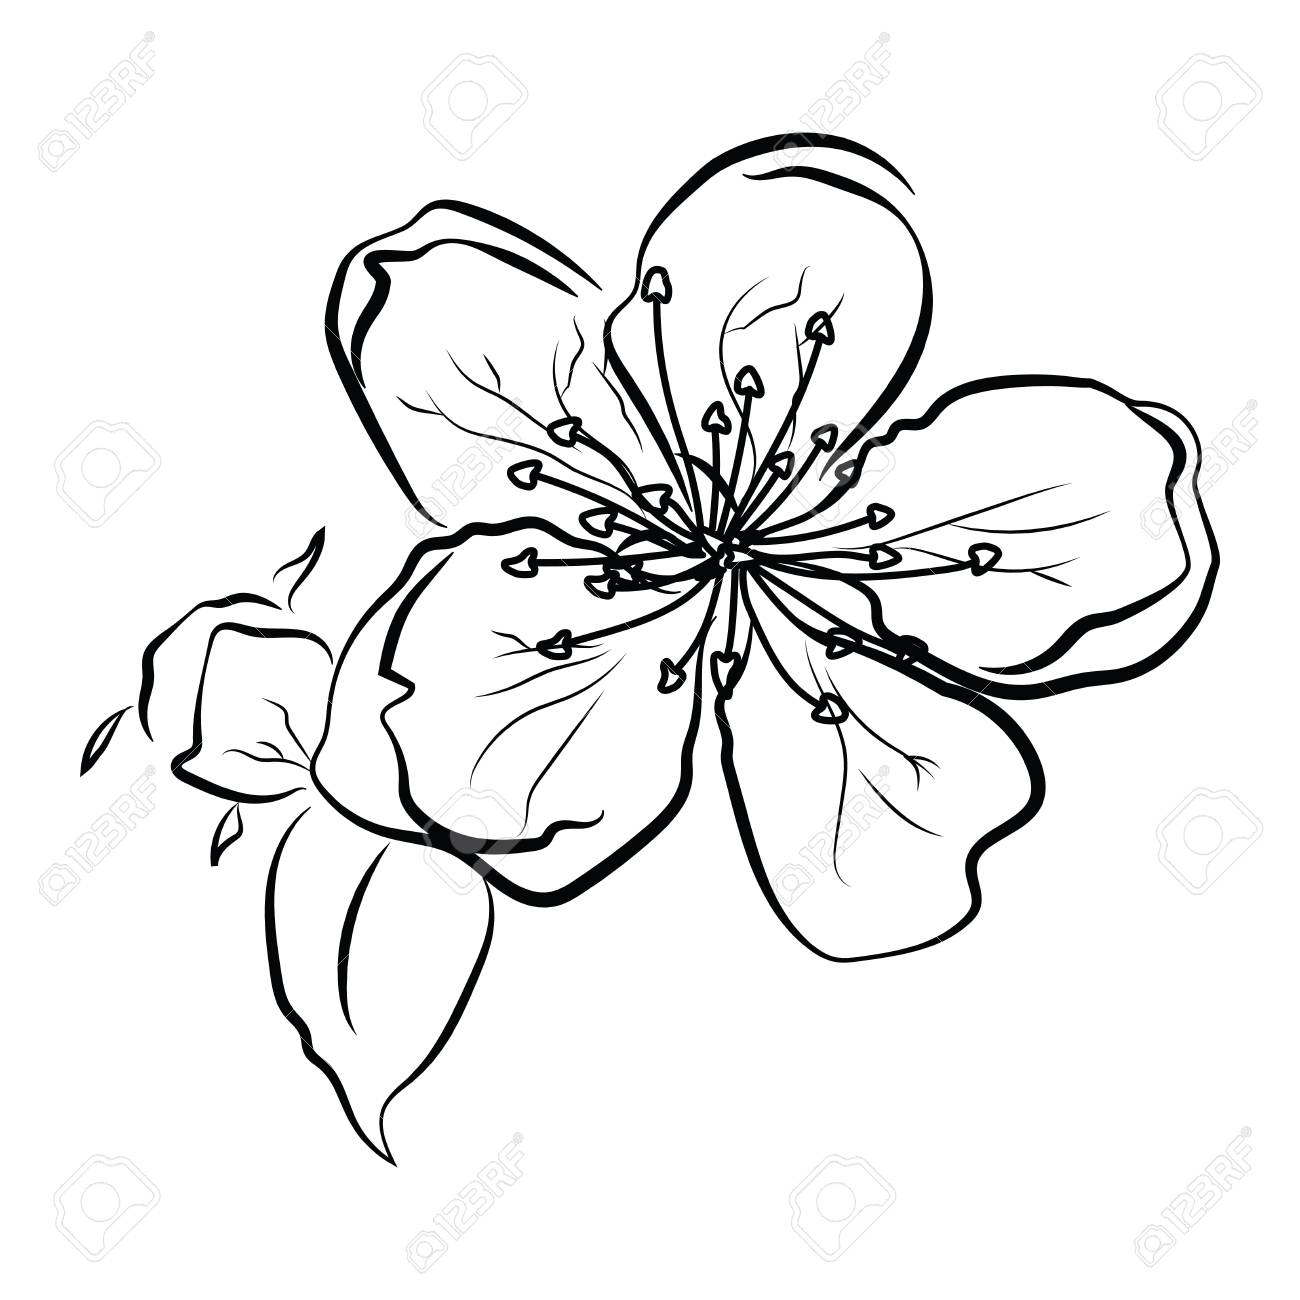 d48c6d684 Blooming cherry. Sakura branch with flower buds. Black and white drawing of  a blossoming